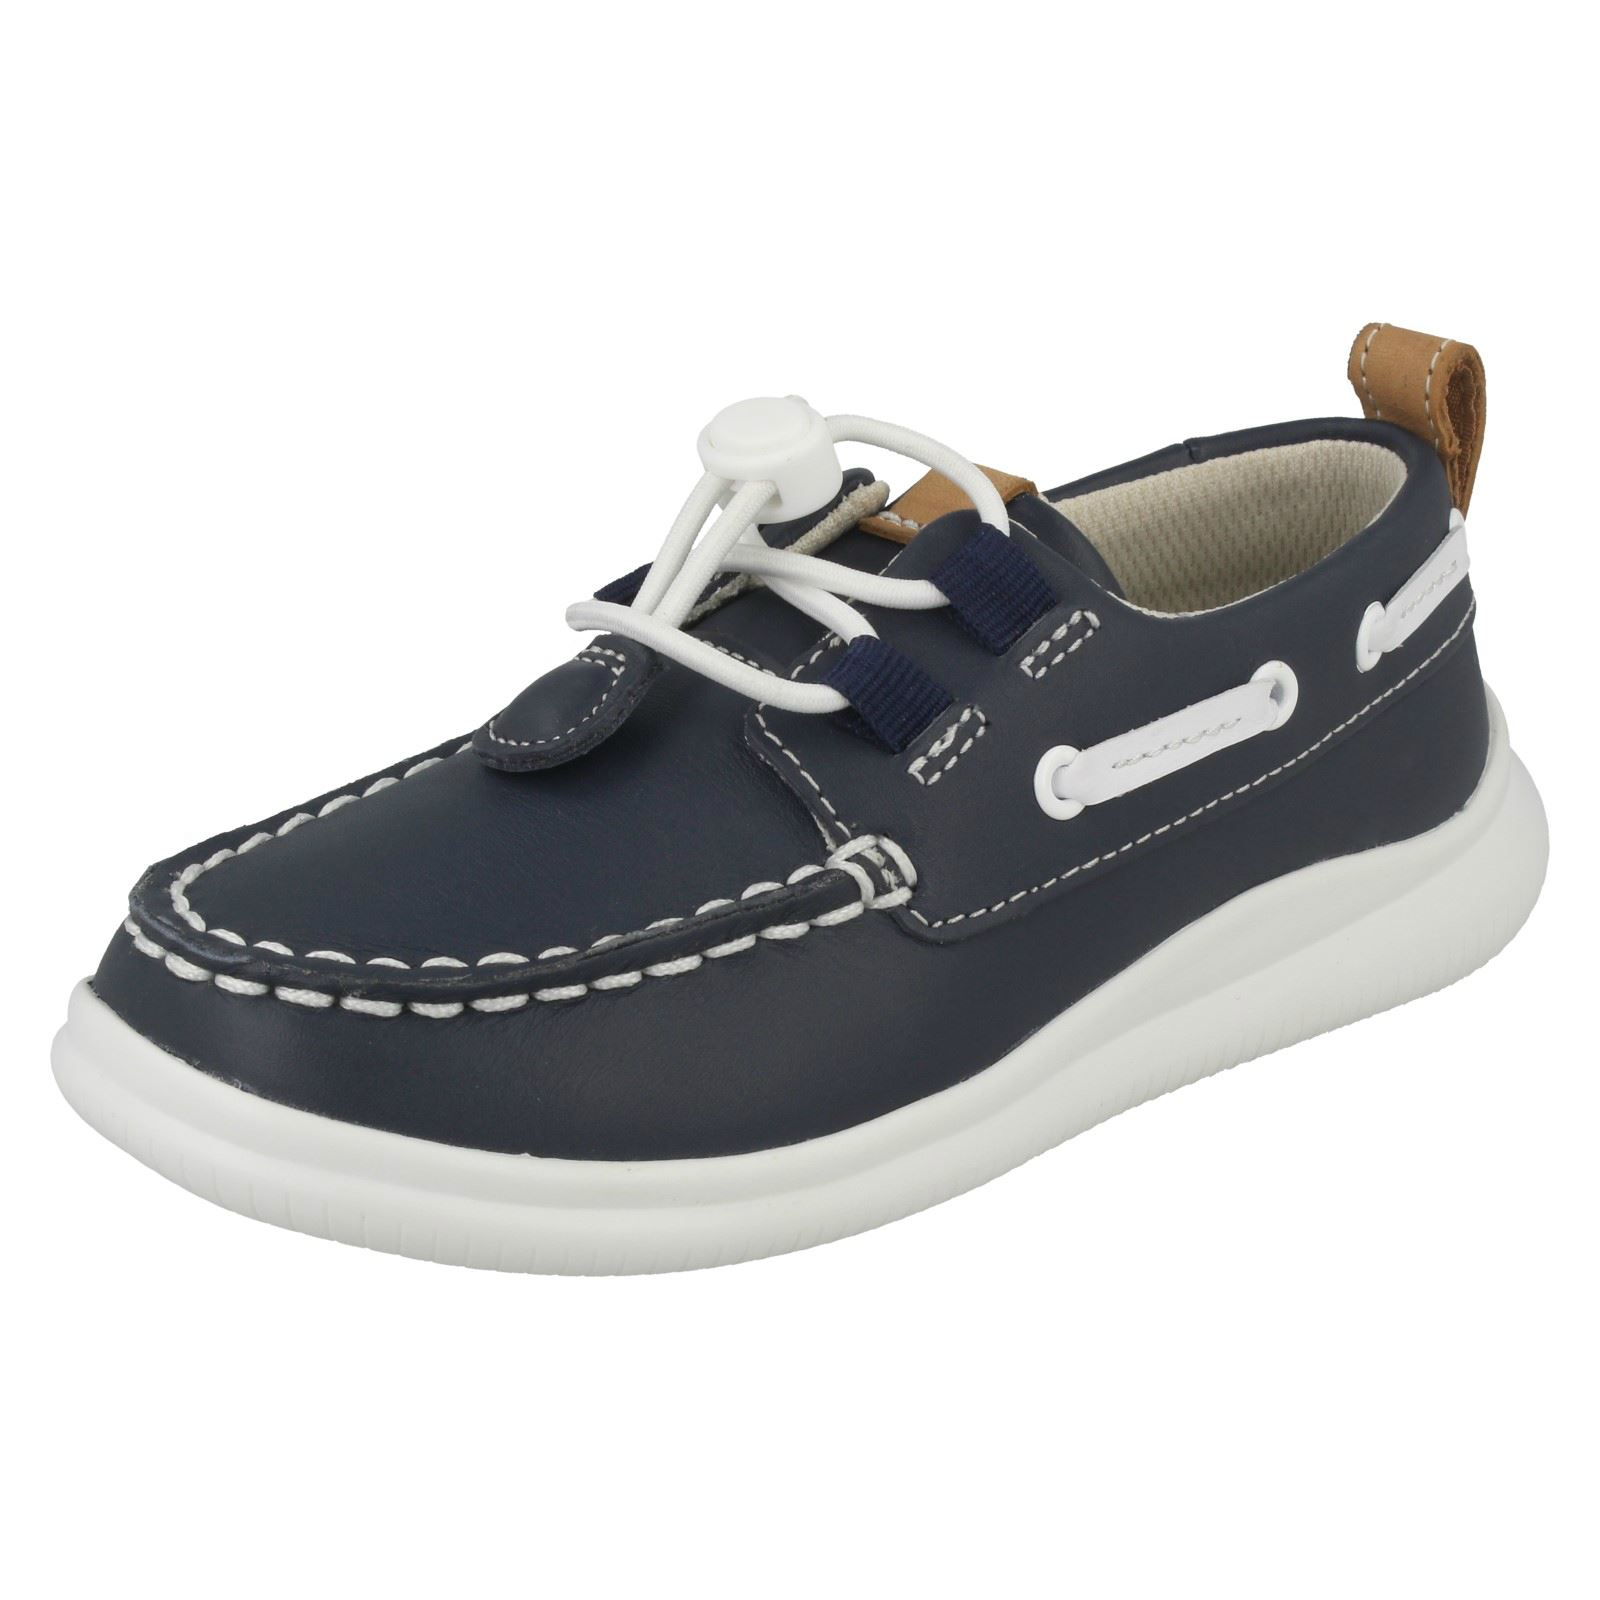 Clarks Boys Casual Shoes 'Cloud Swing